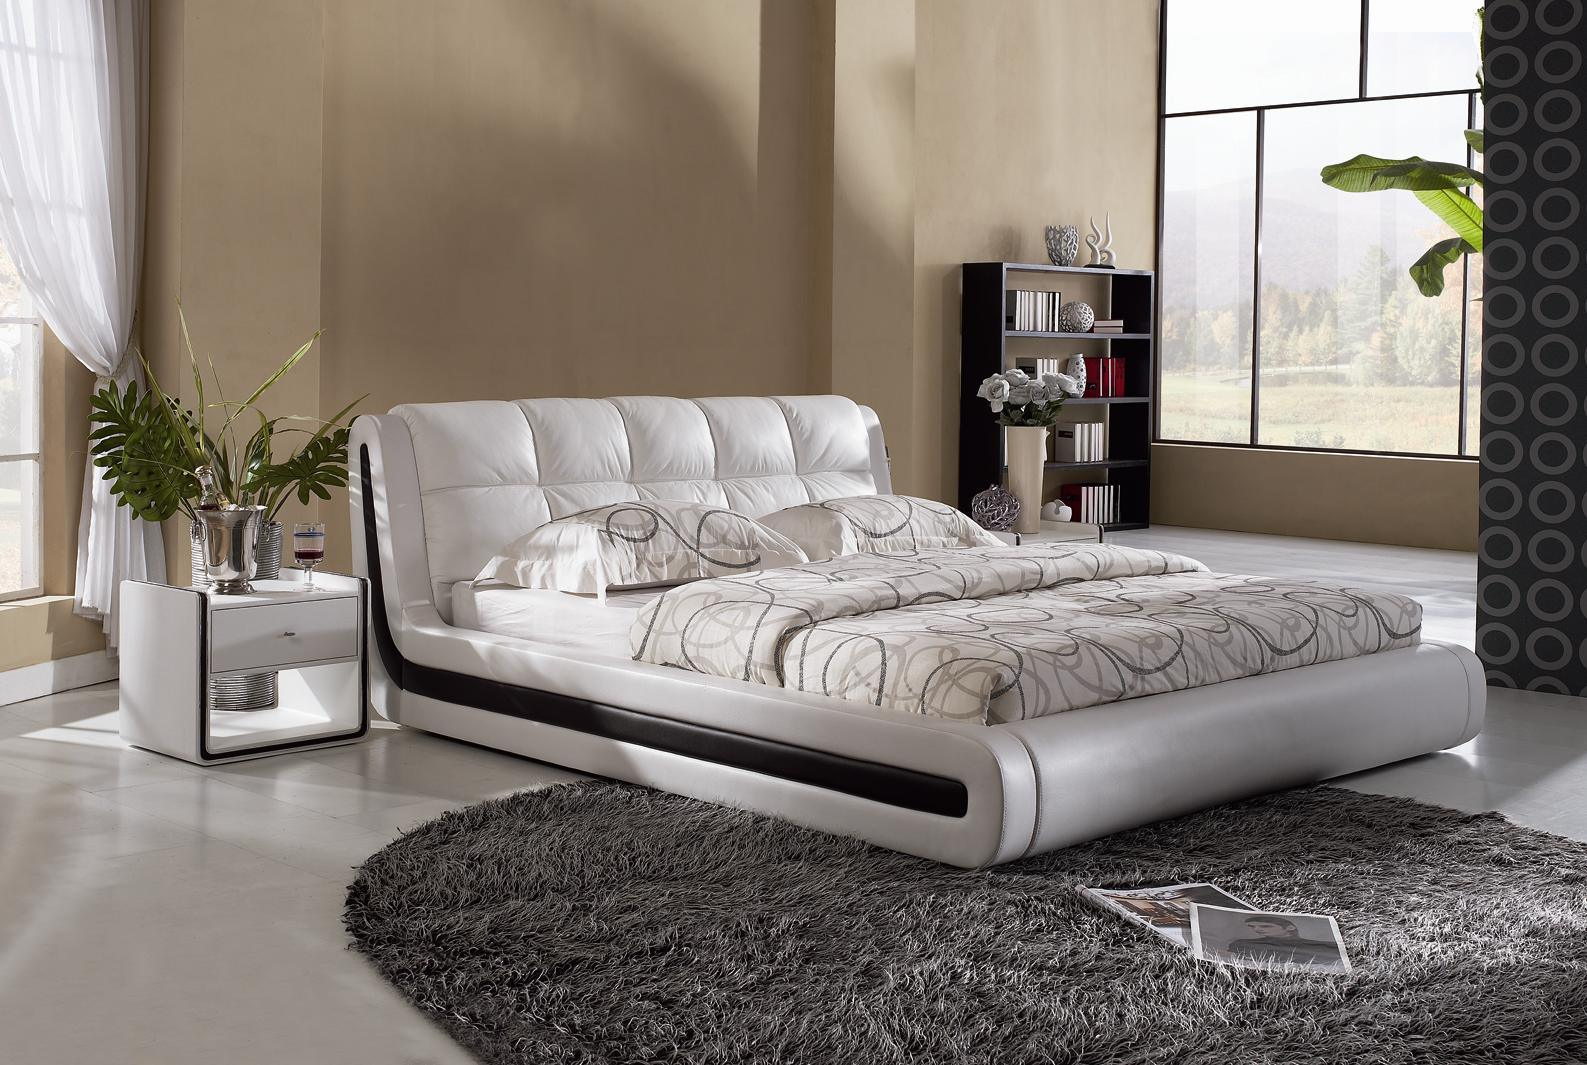 Modern beds design pictures simple home decoration for Bed design ideas furniture